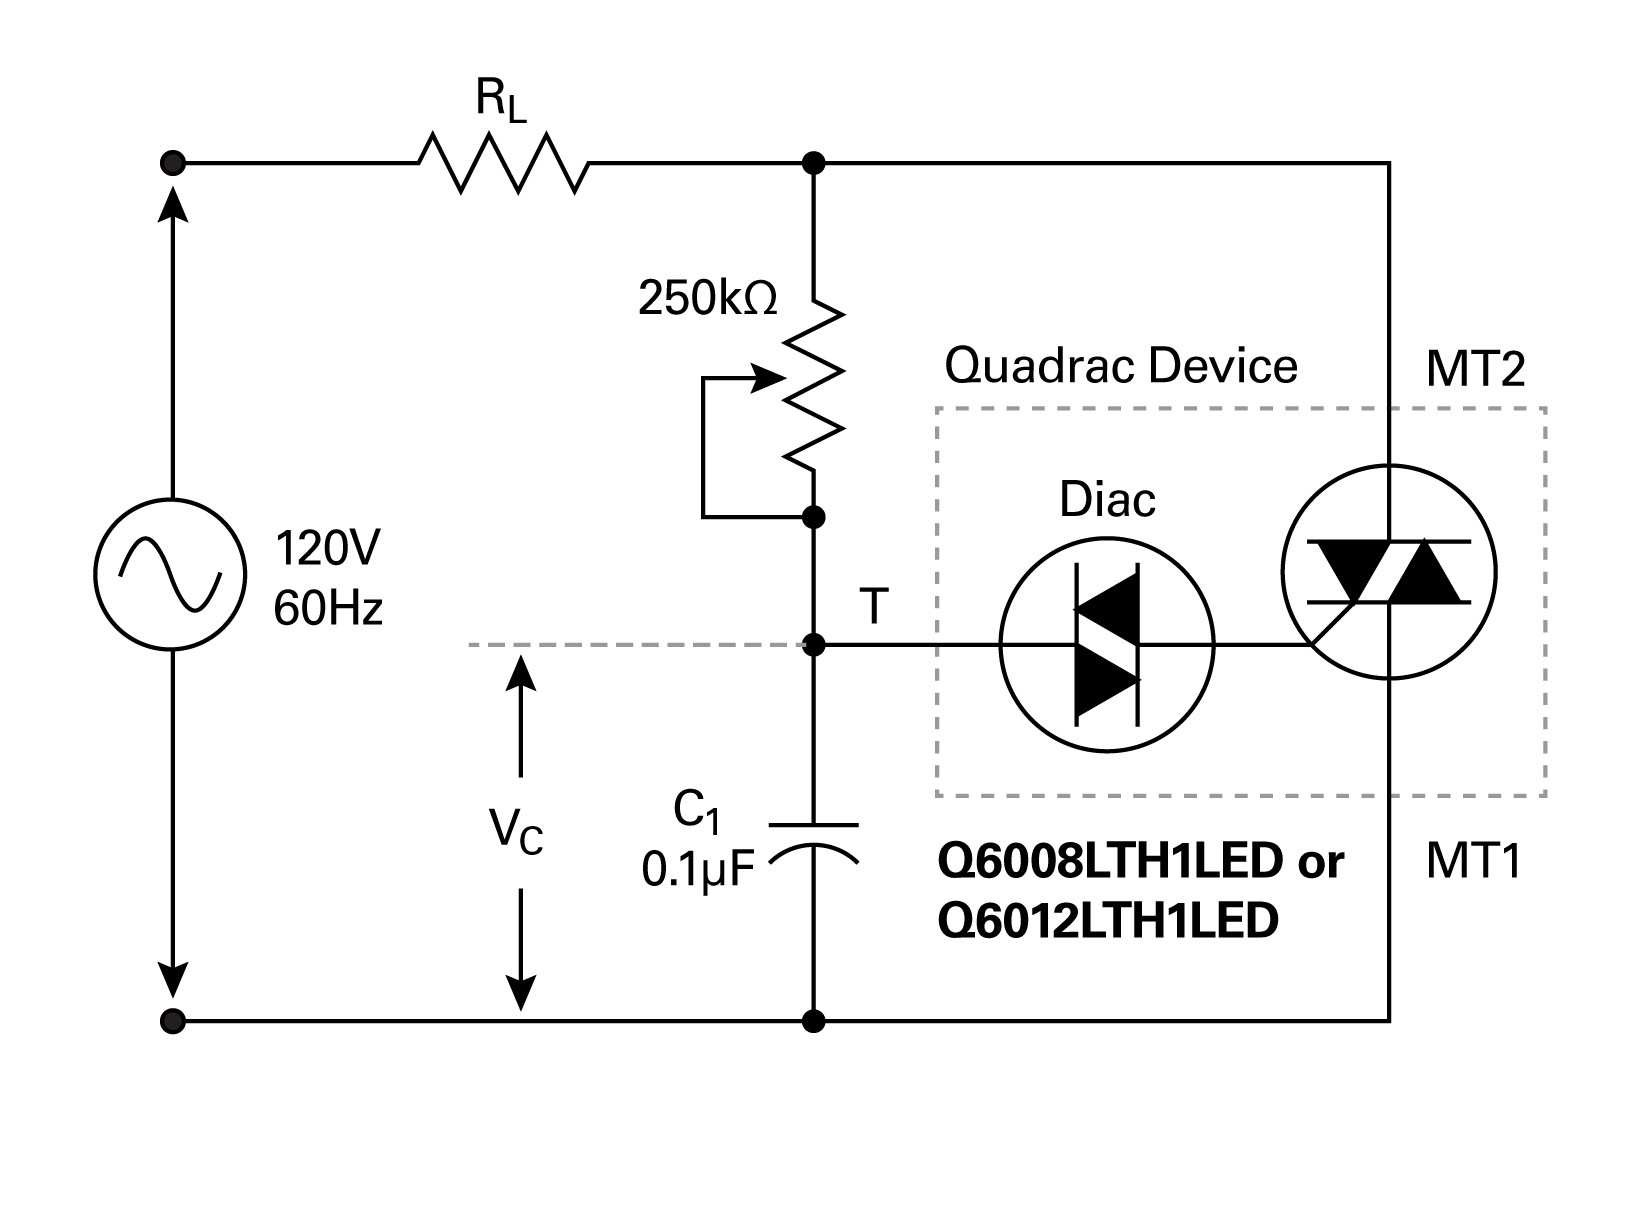 Simplifying Solid State Lighting Control In This Quadrac Based Dimming Circuit The Potentiometer Is With Built